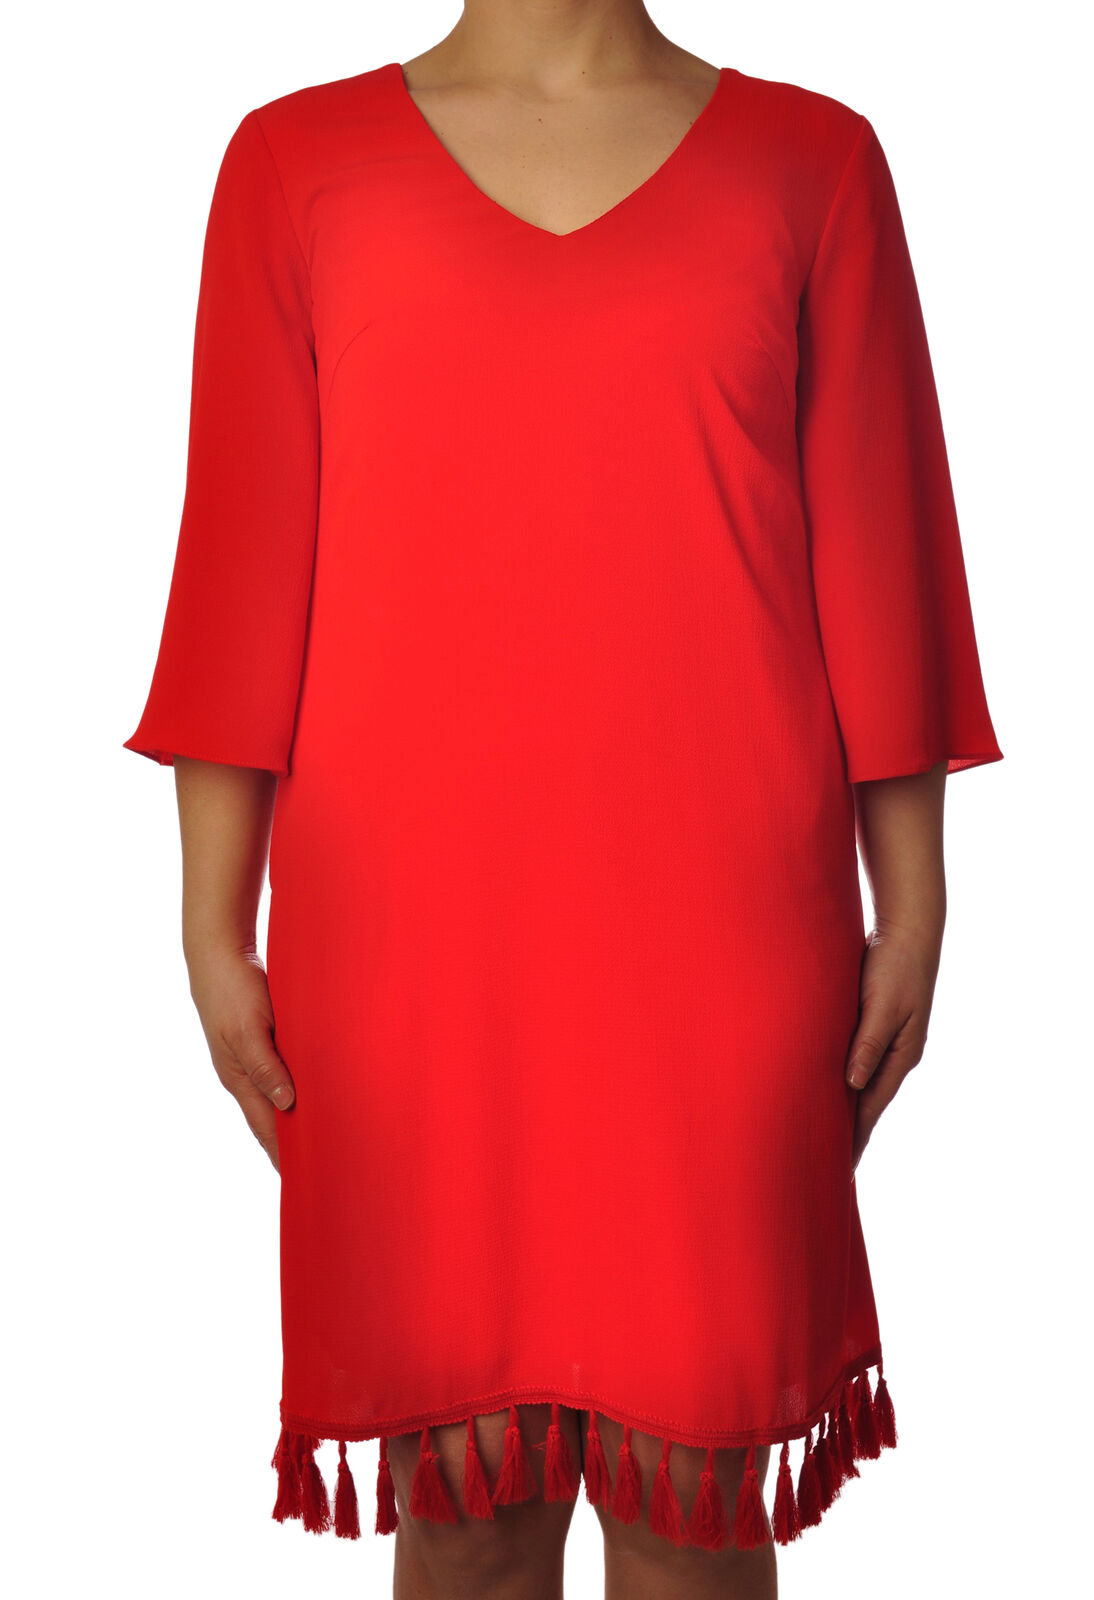 Traffic People - Dresses-Dress - Woman - Red - 5116906C195024